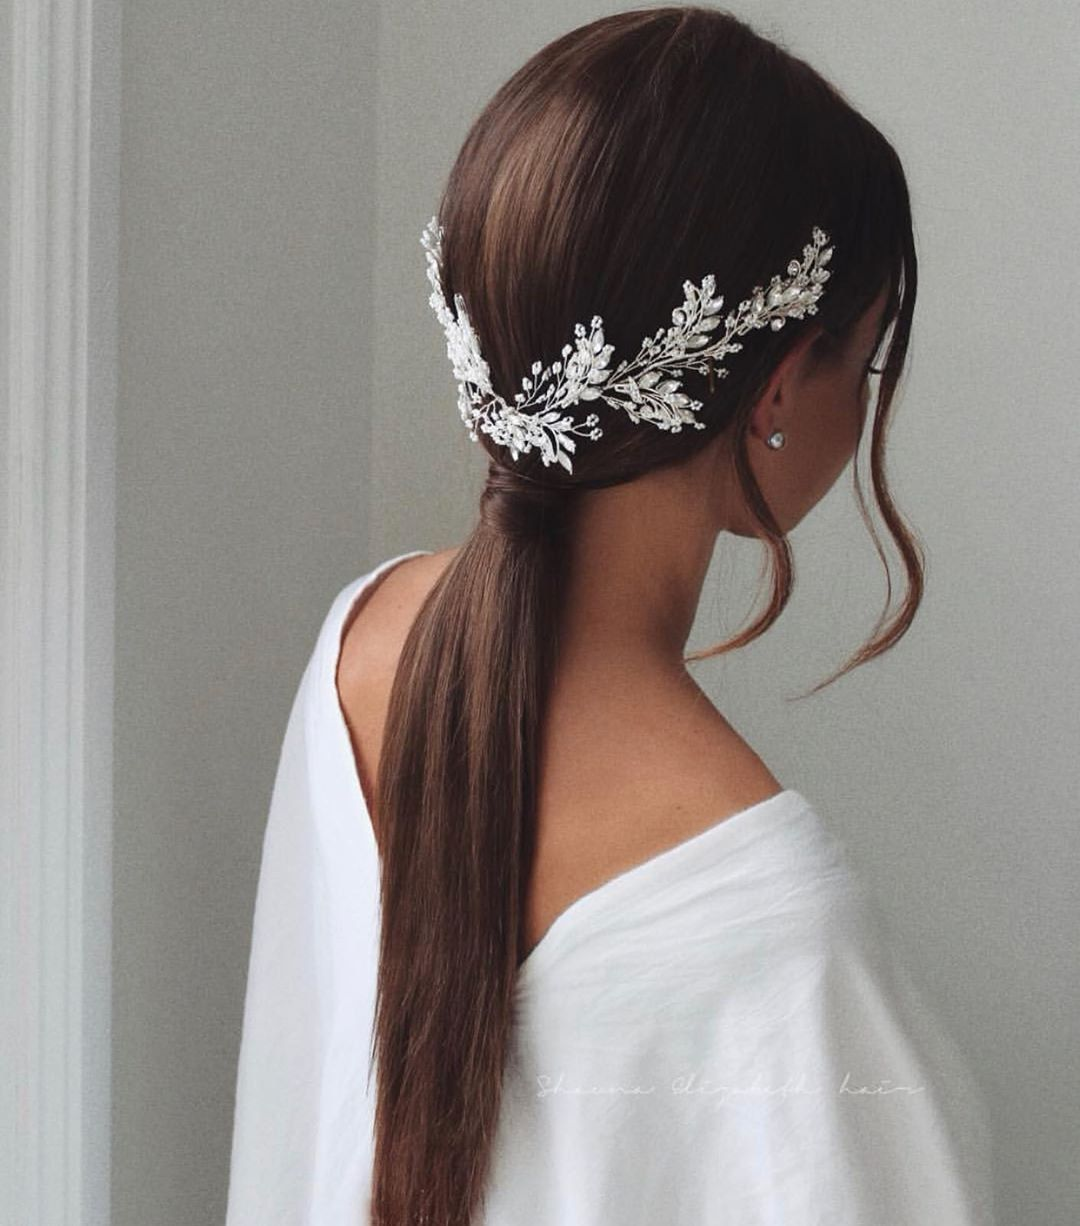 Hair Accessories Inspiration for Weeding or Prm  Bridal hair